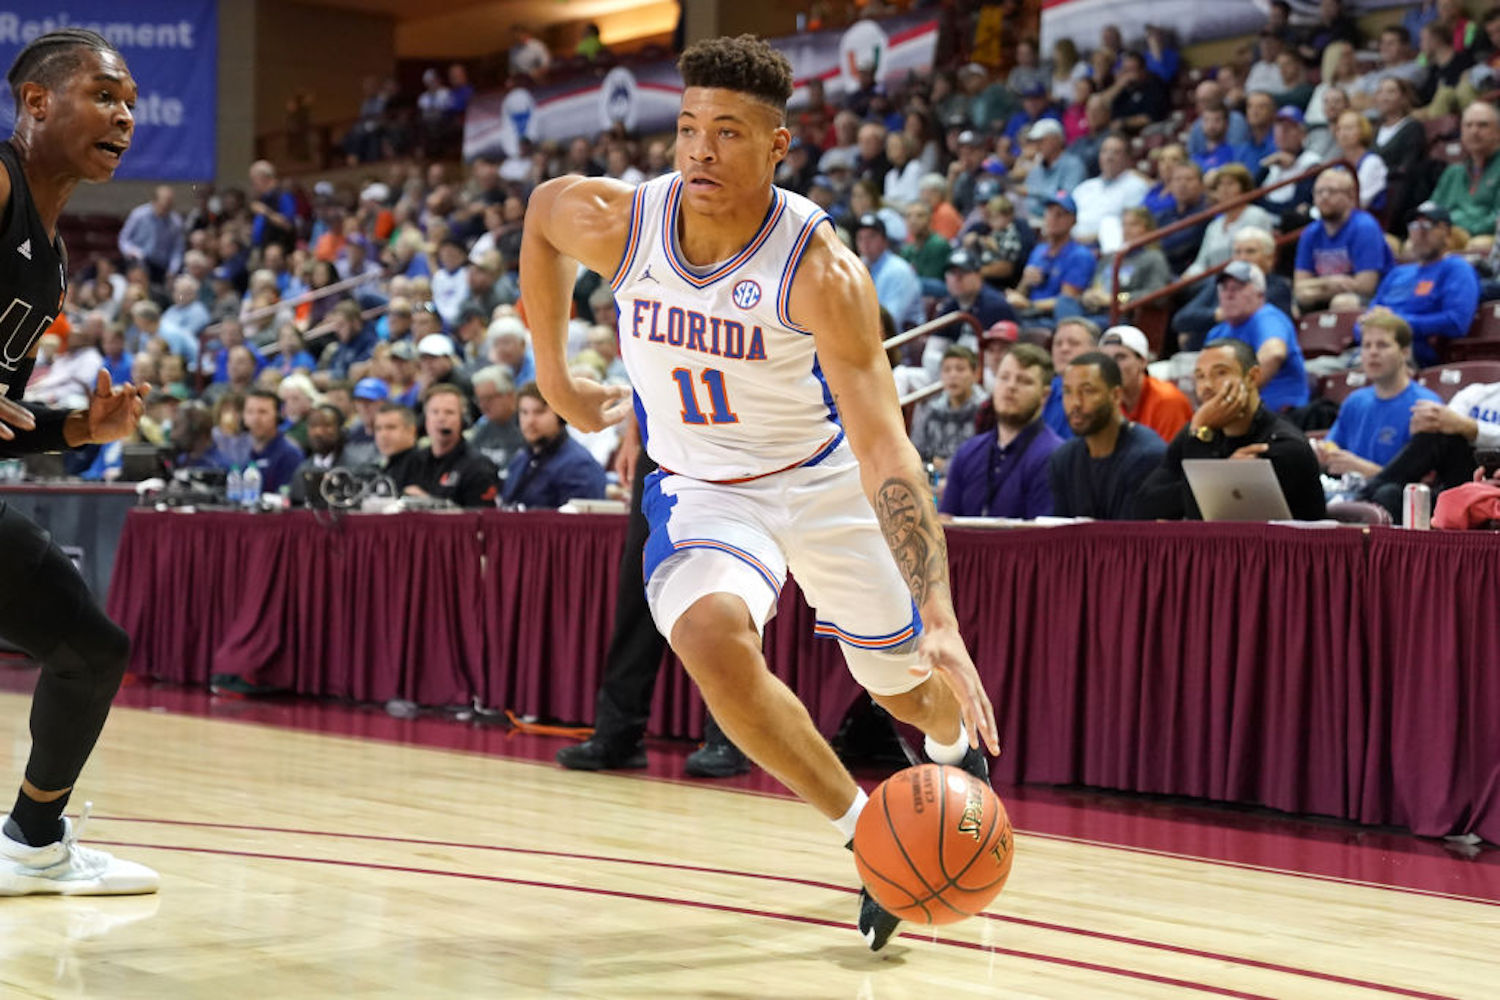 Keyontae Johnson collapsed on the court last weekend, but the latest update on his health made basketball fans breath a sigh of relief.